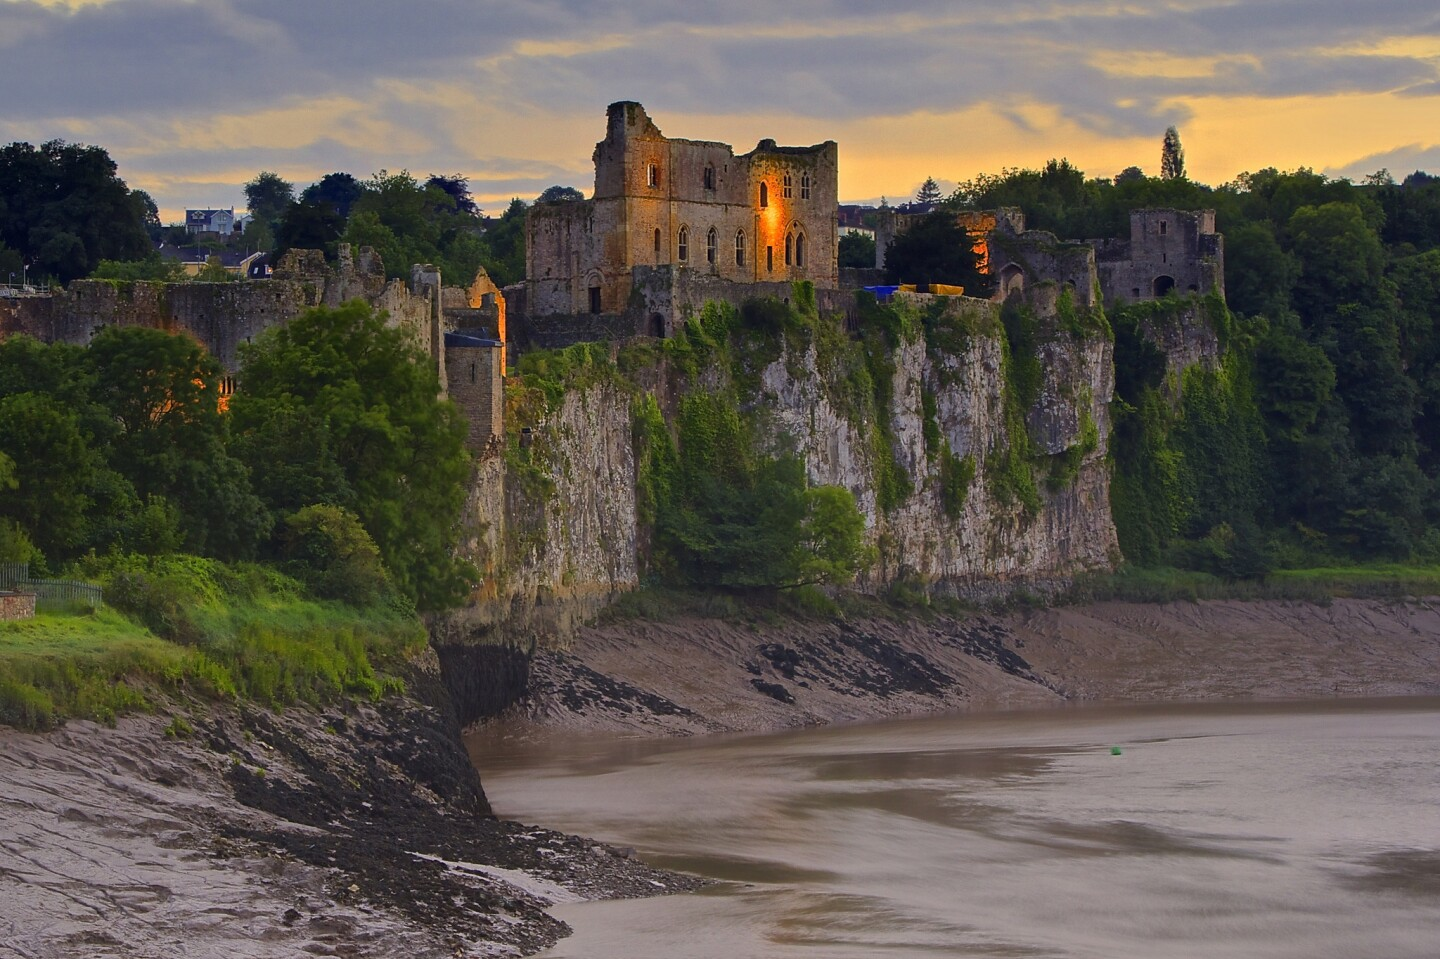 Chepstow Castle was built after William the Conqueror was crowned king of England in 1066.